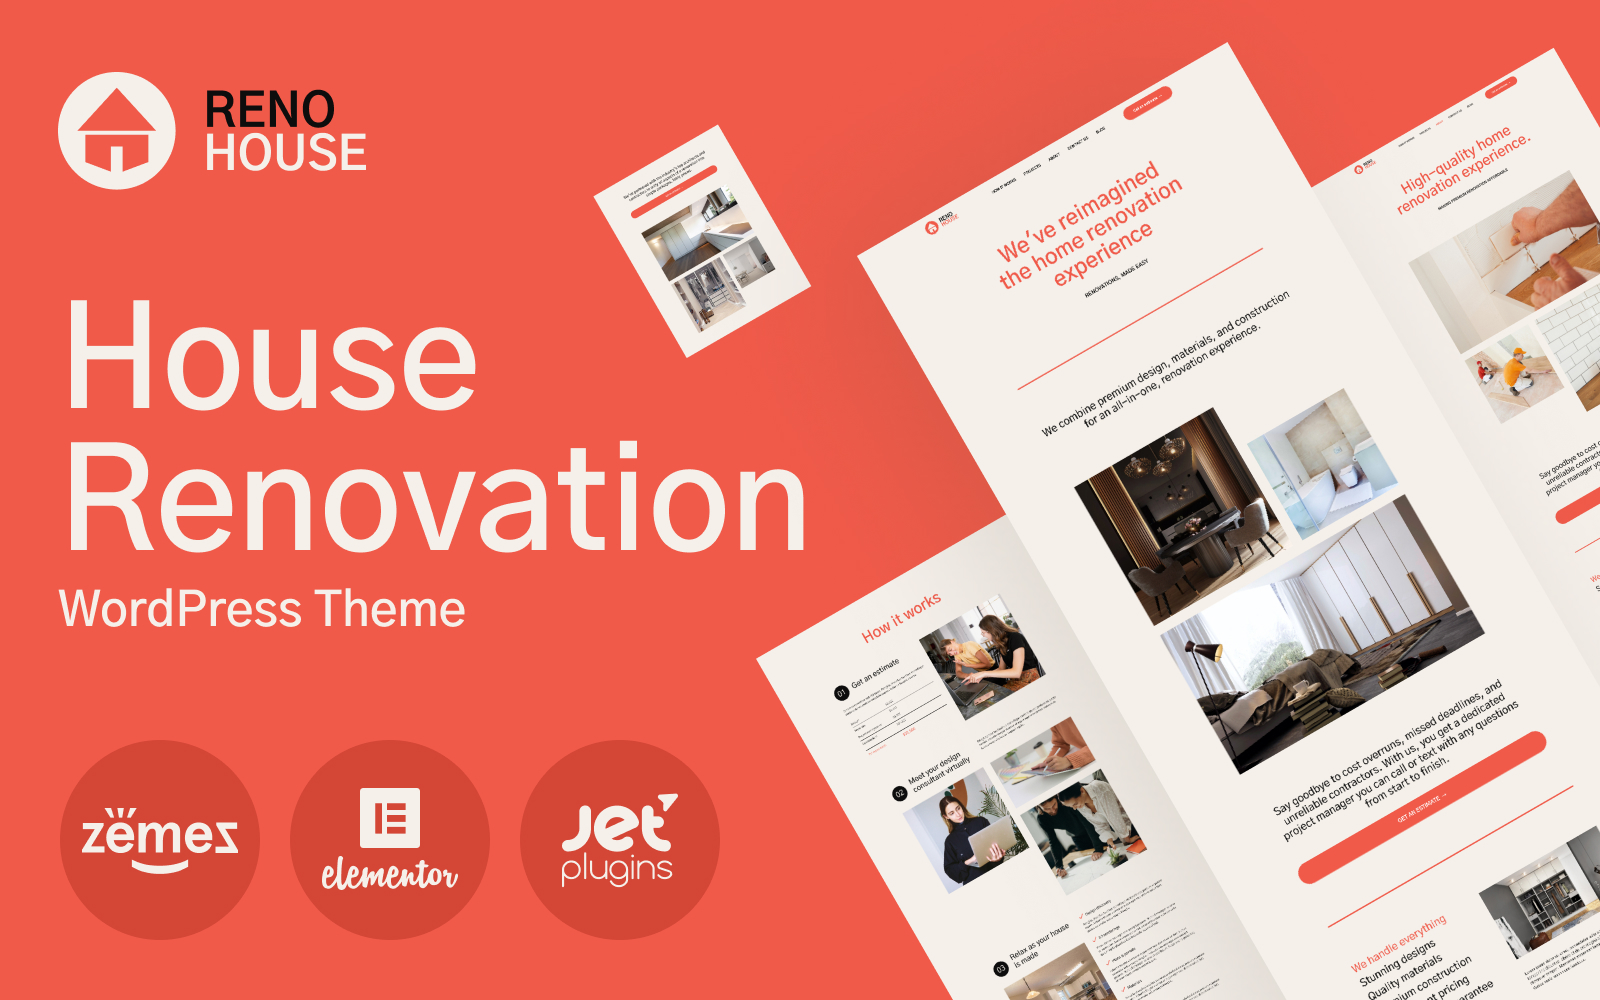 RenoHouse - Modern Construction Project Website WordPress Theme